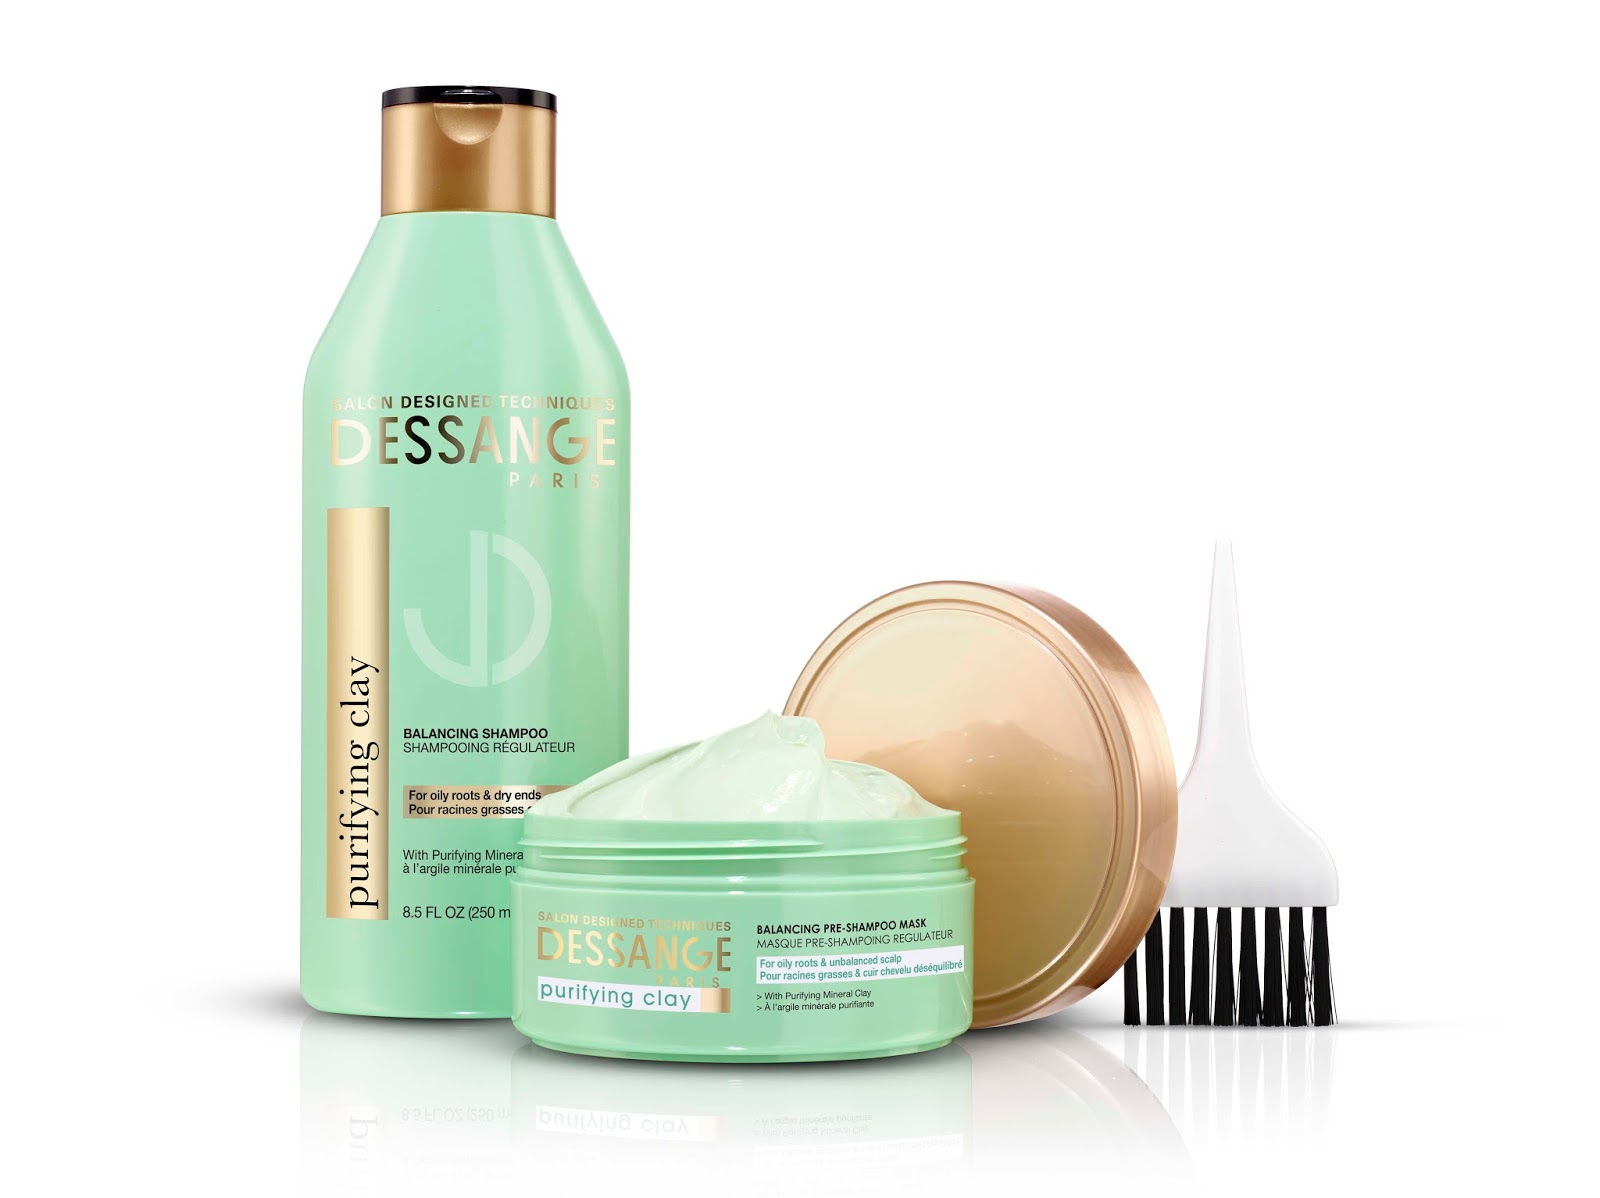 Coiffe Decoiffe Jacques Dessange A1nettie 39s Loves Clay Mask For Hair Dessange At Target